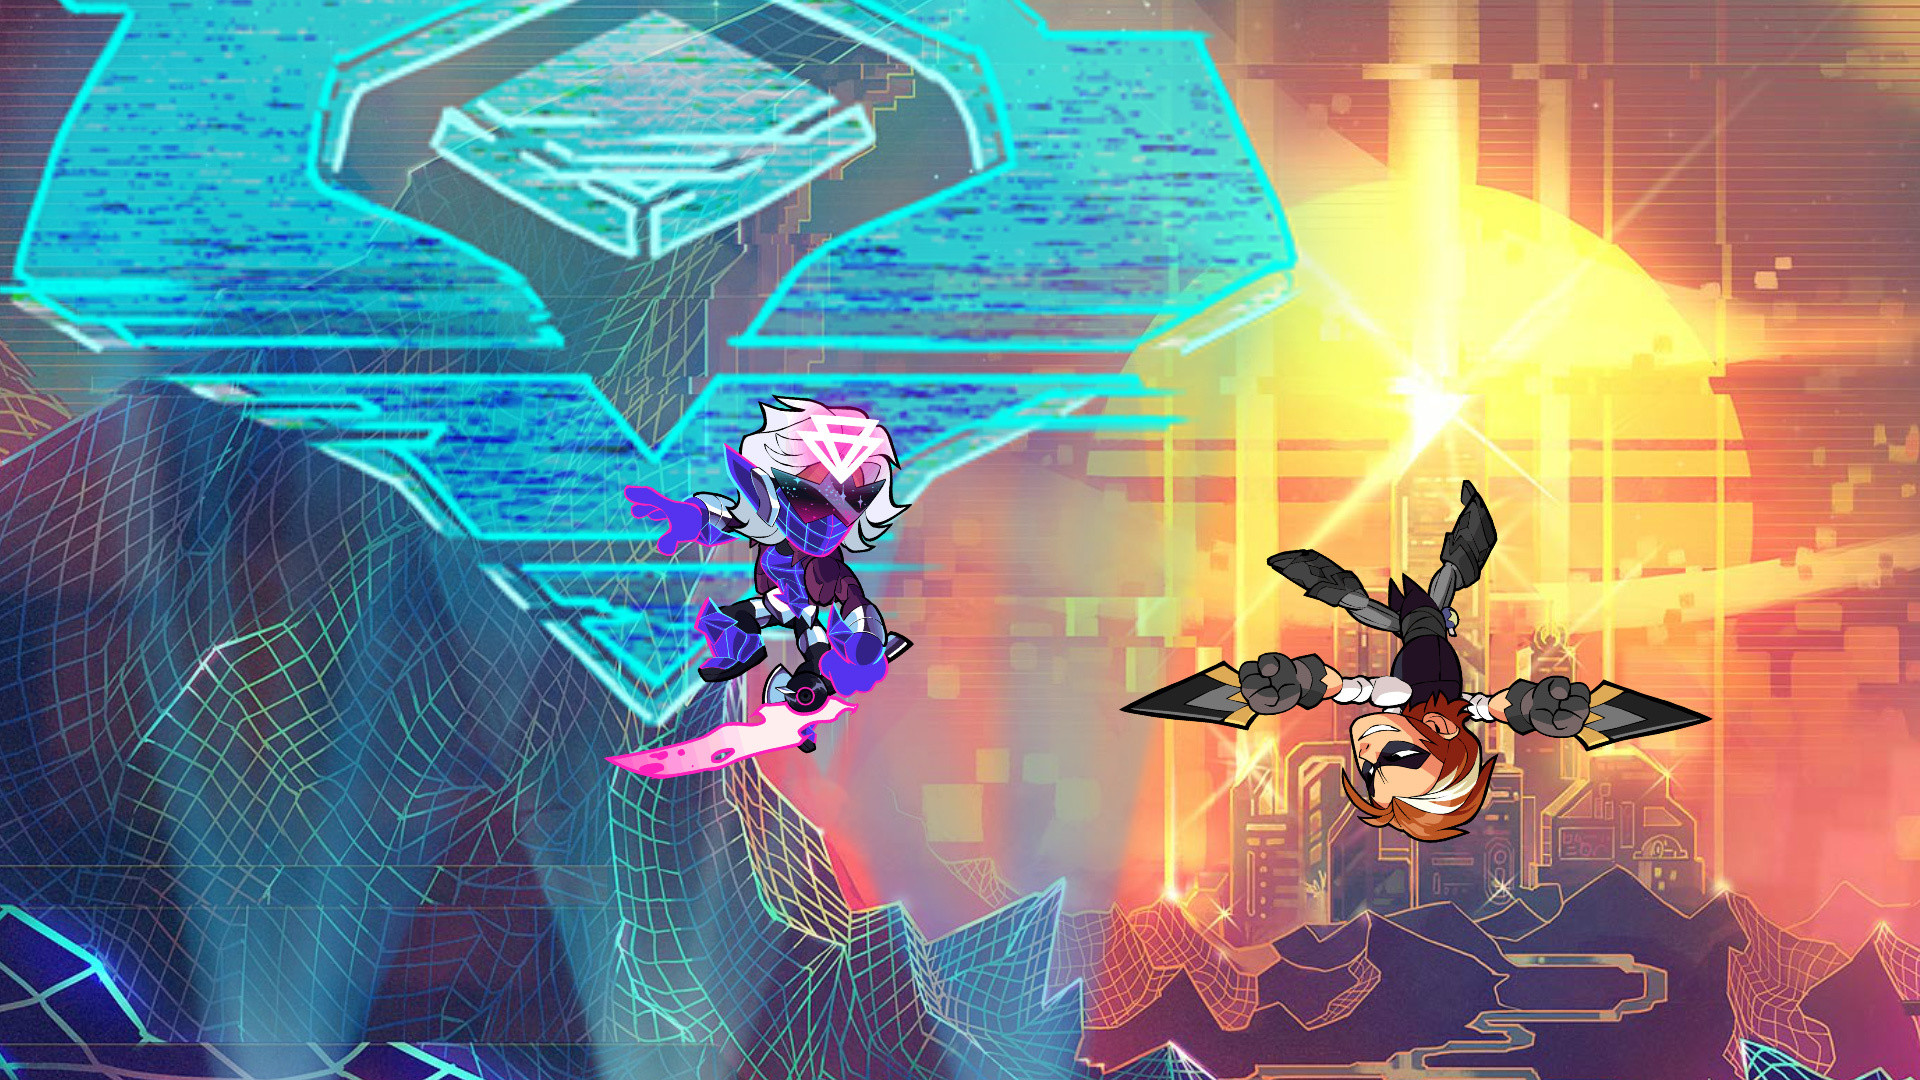 Find the best laptop for Brawlhalla